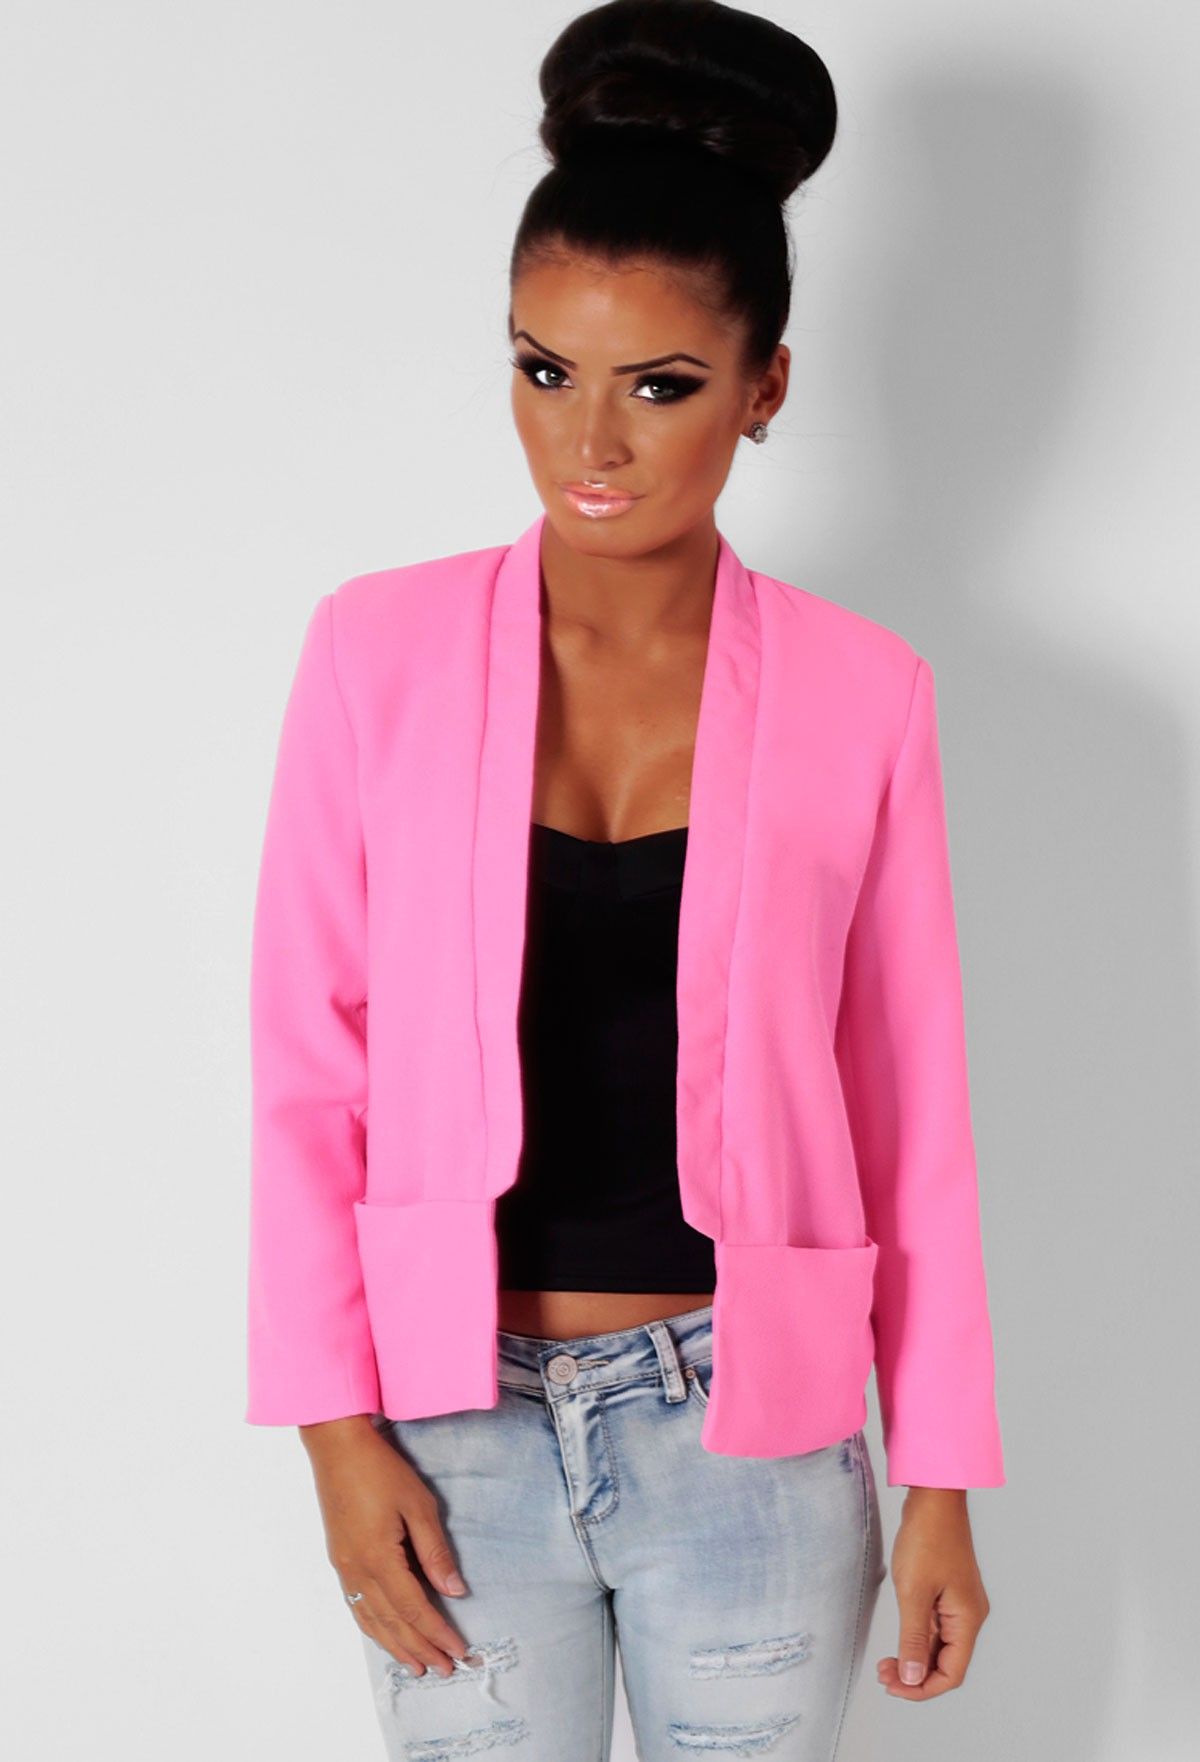 Summer Breeze Pink 3/4 Sleeve Blazer Jacket | Pink Boutique